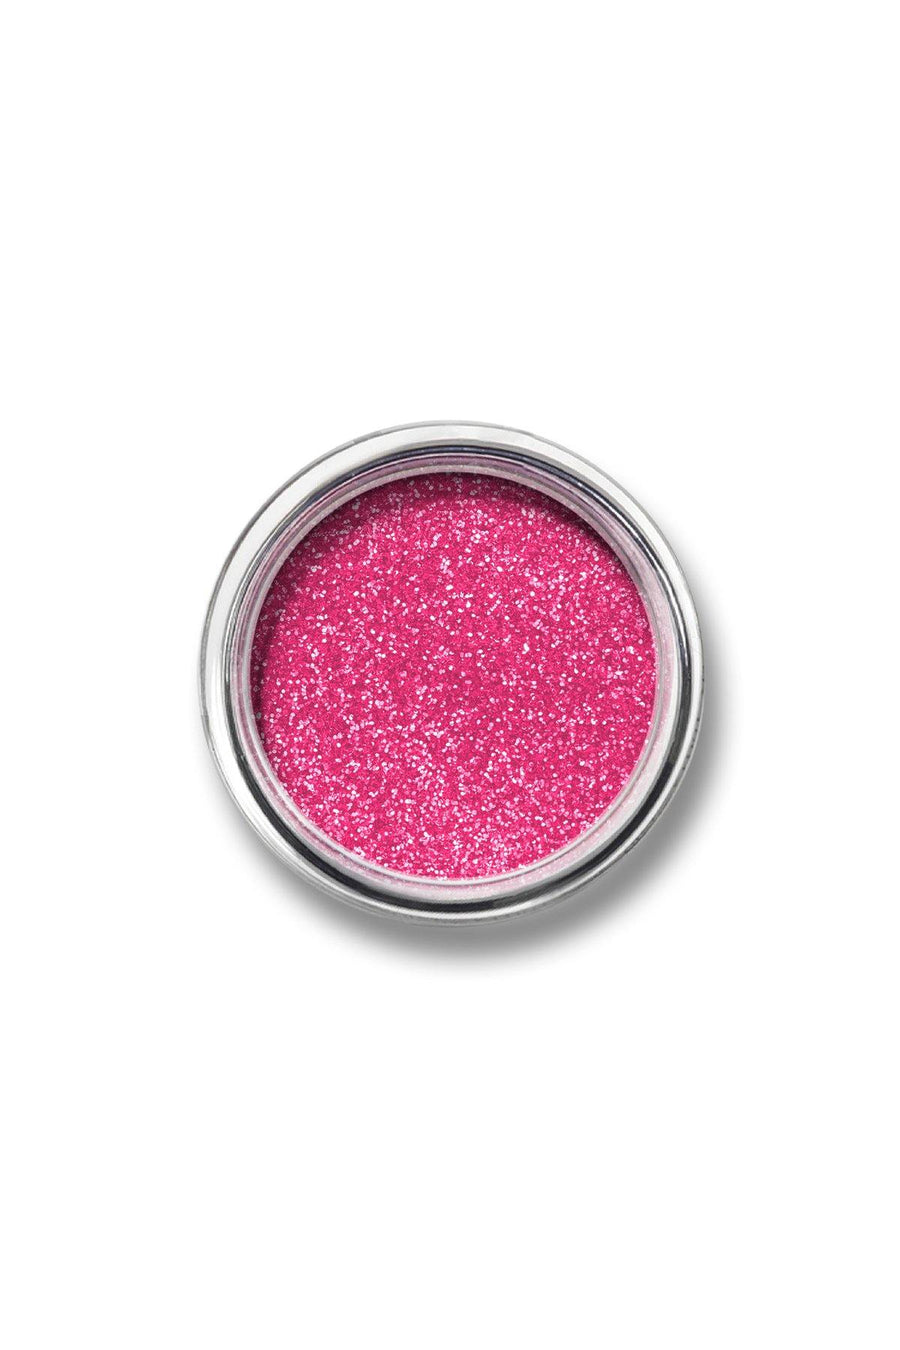 Glitter Powder #3 - Pink - Blend Mineral Cosmetics